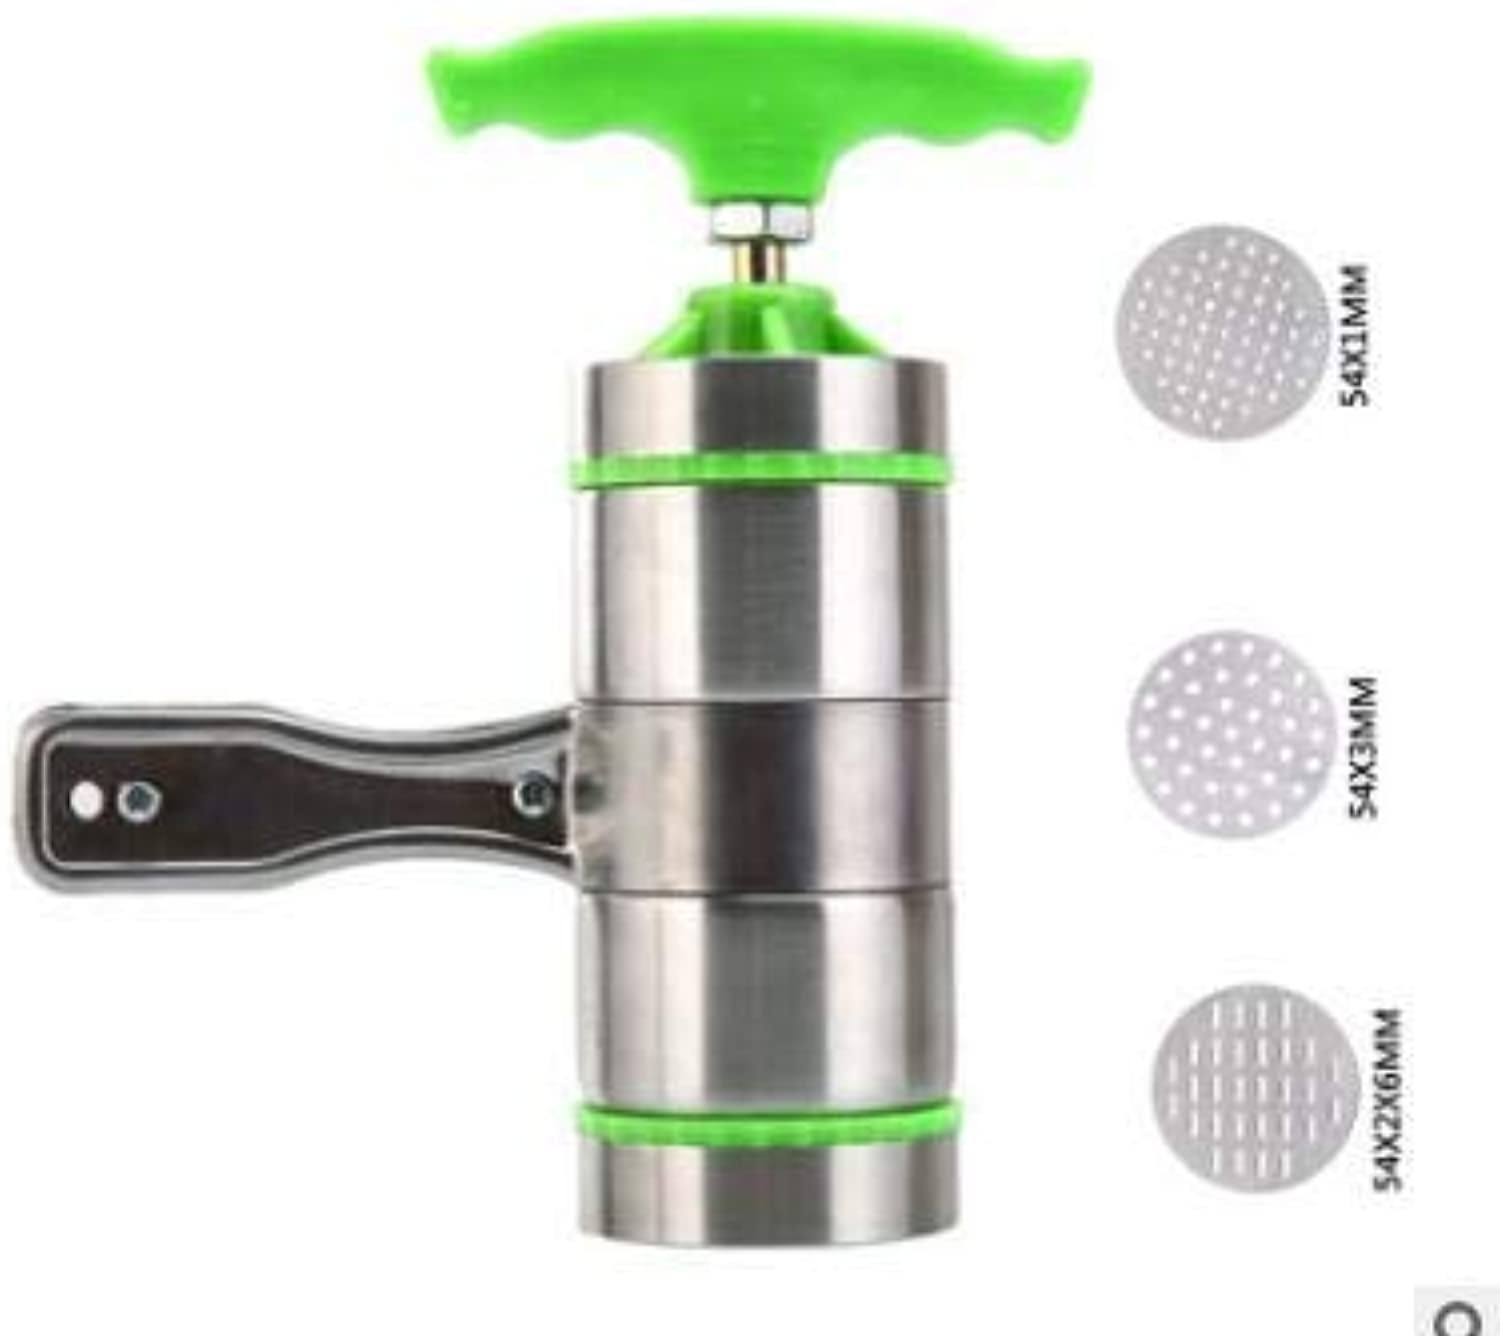 OUSSIRRO 1 pcs Manual All Noodle Household Stainless Steel Press   2